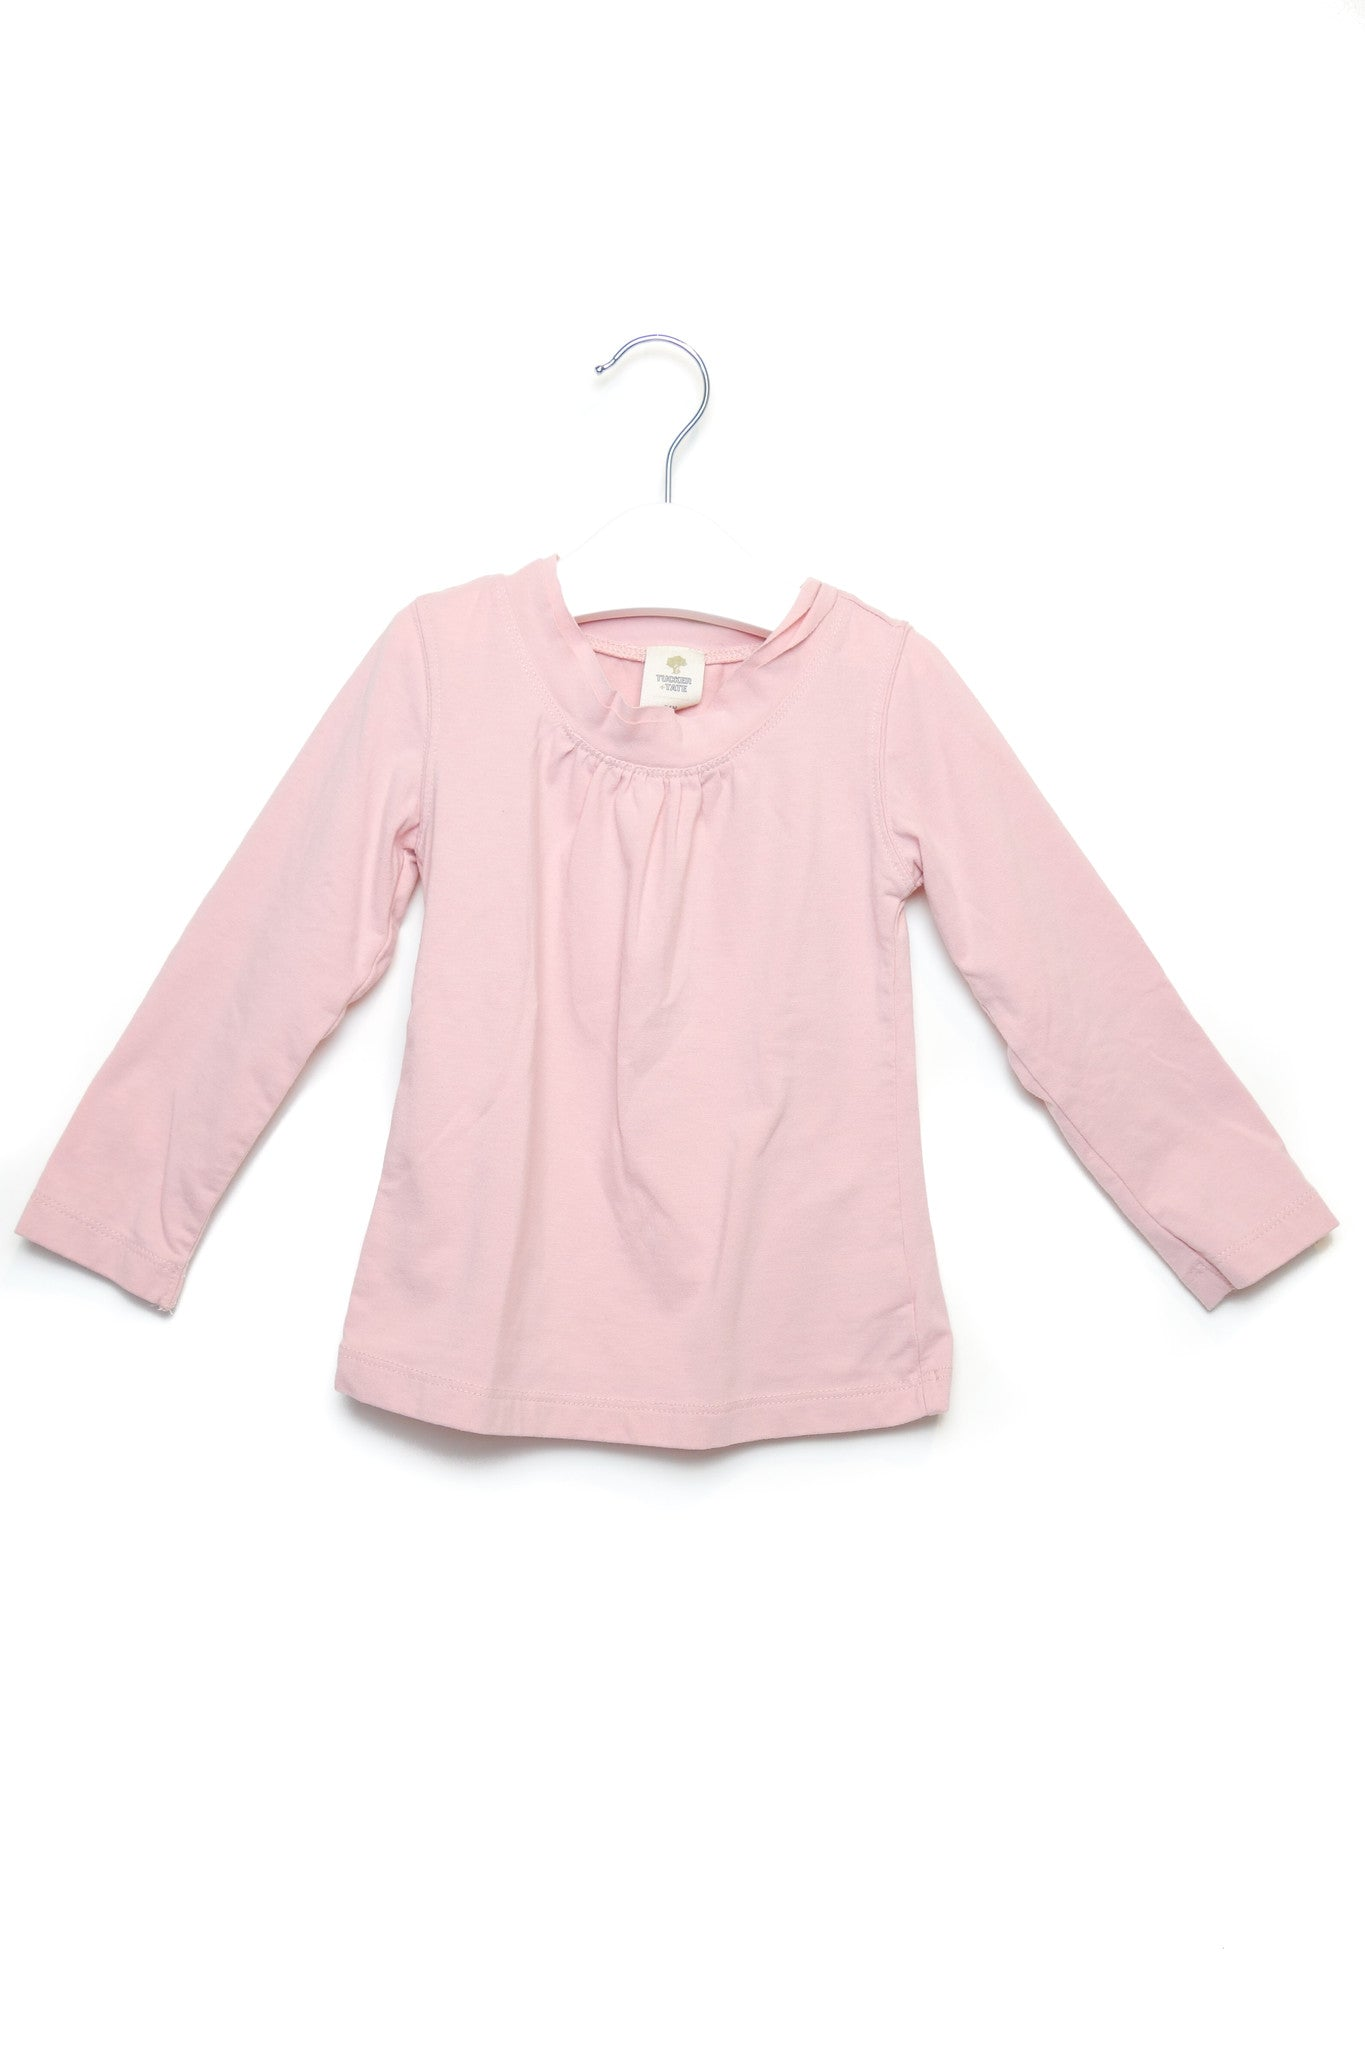 Tucker & Tate at Retykle | Online Shopping Discount Baby & Kids Clothes Hong Kong